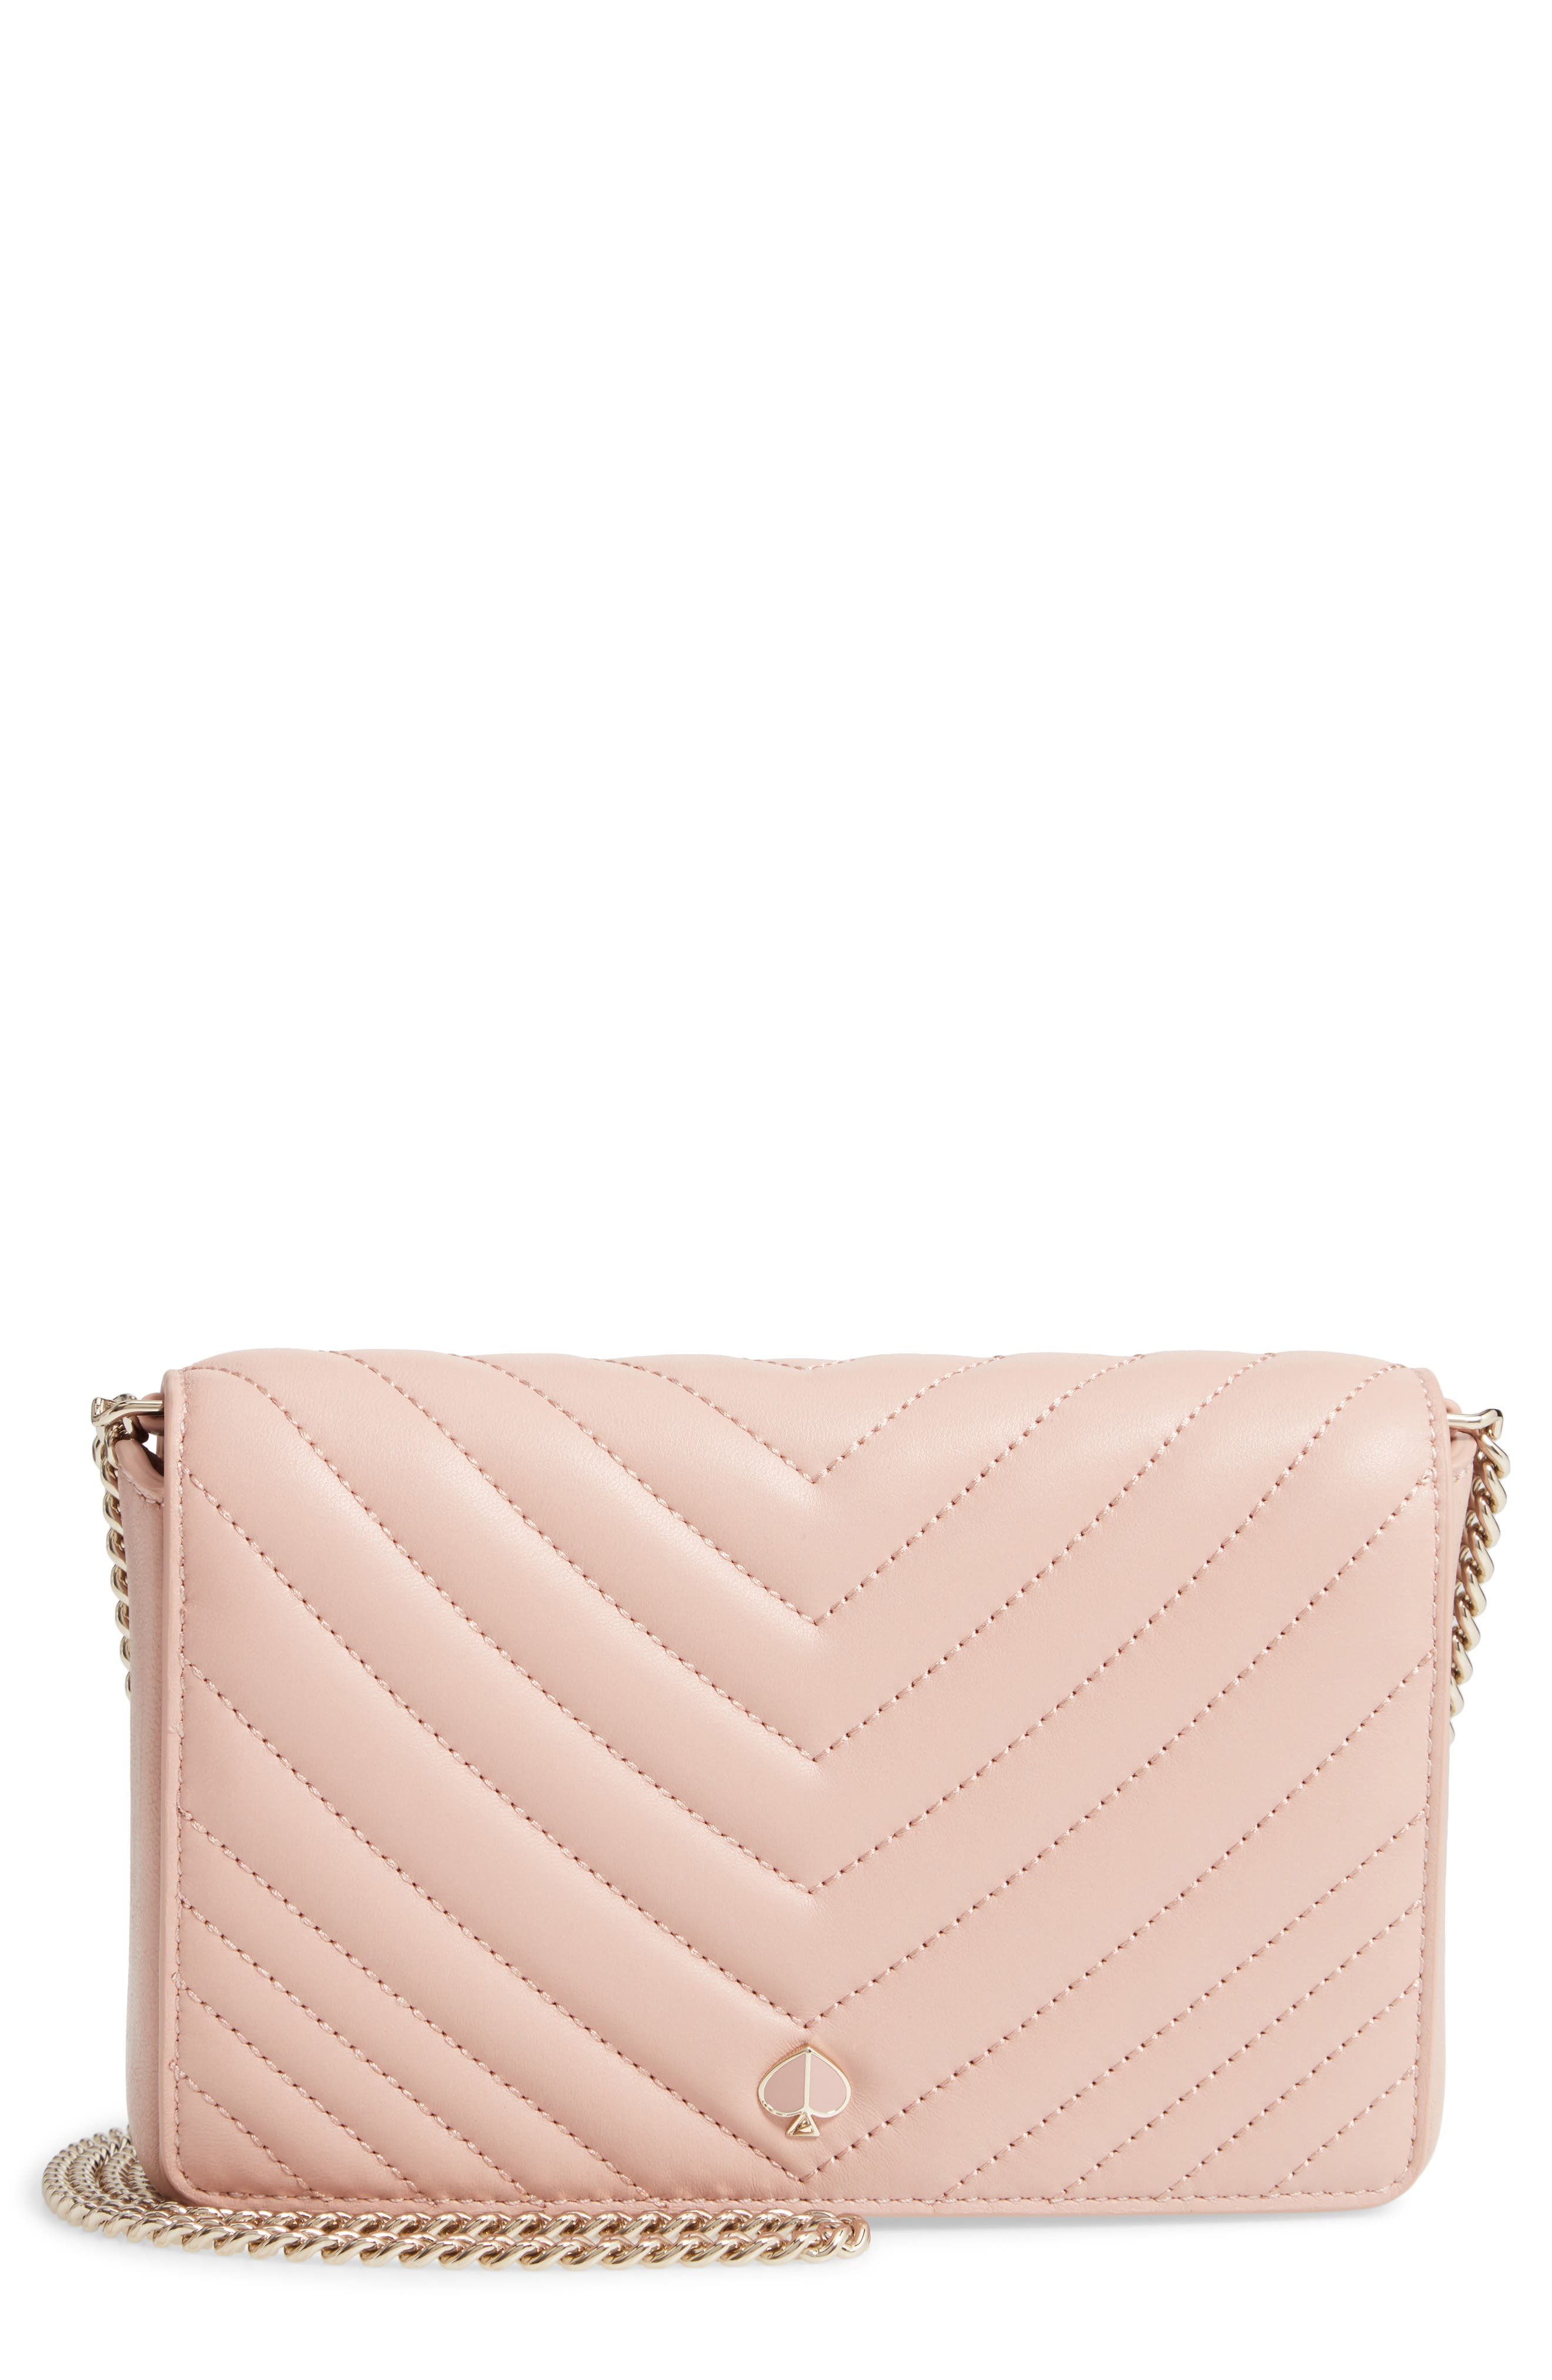 KATE SPADE NEW YORK, amelia quilted leather clutch, Main thumbnail 1, color, FLAPPER PINK